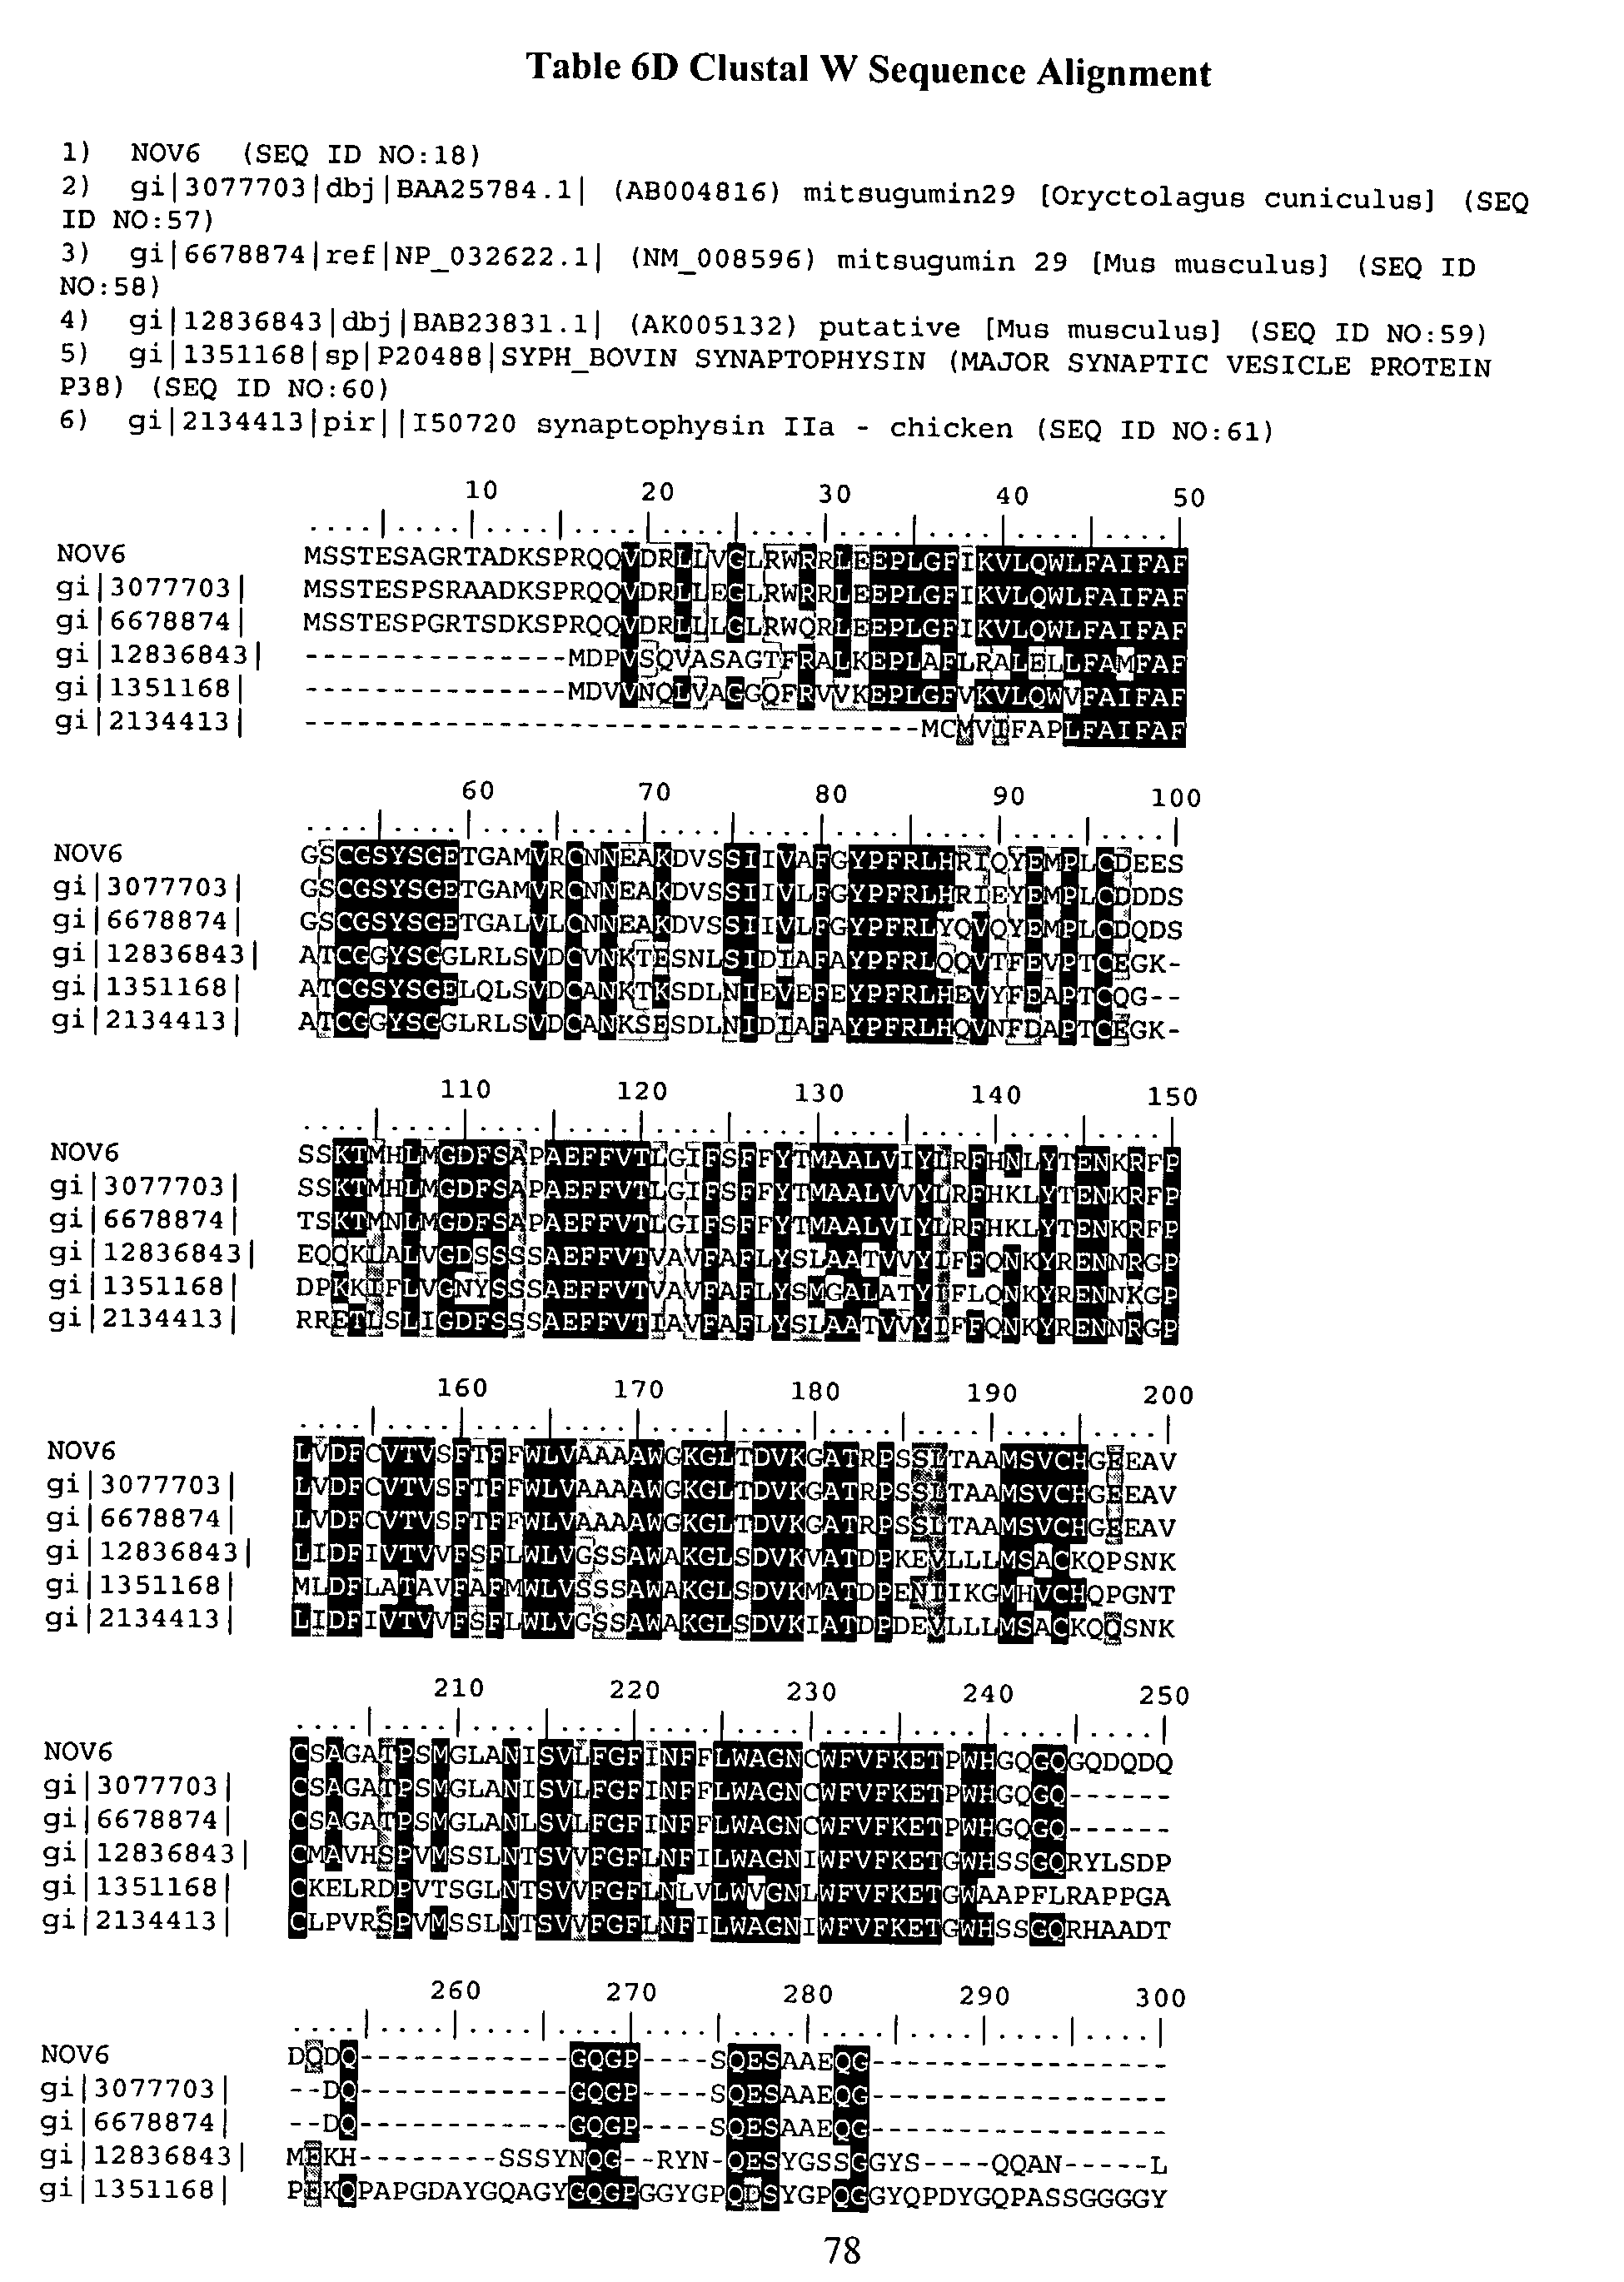 Us20040029116a1 Proteins And Nucleic Acids Encoding Same Google 2102 Focus Fuse Box Figure 20040212 P00026